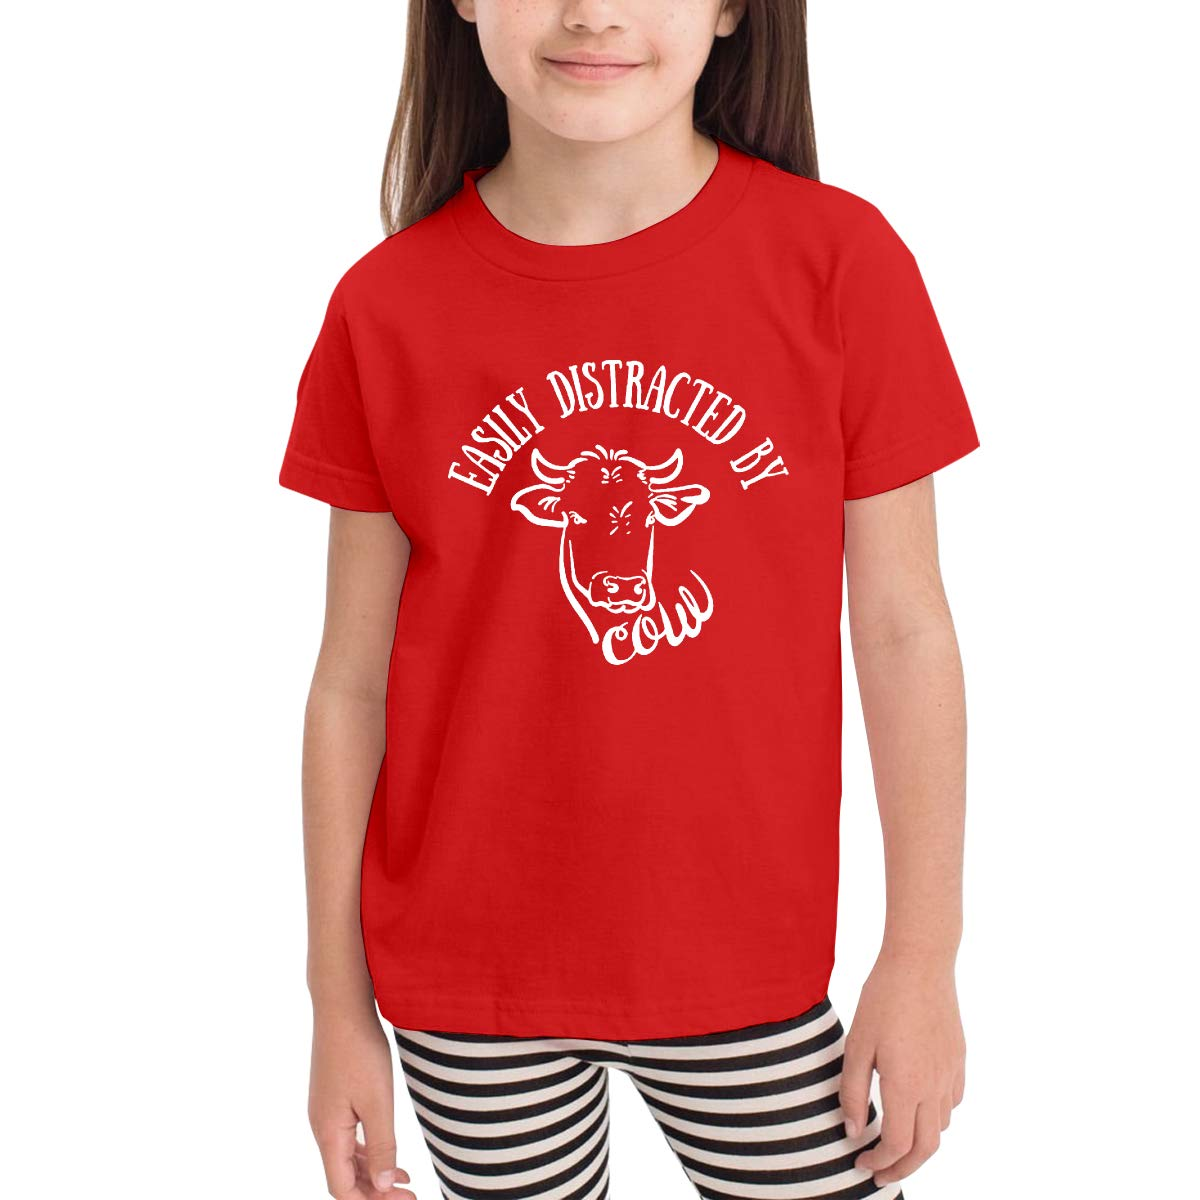 Kids T-Shirt Tops Black Easily Distracted by Cows Unisex Youths Short Sleeve T-Shirt